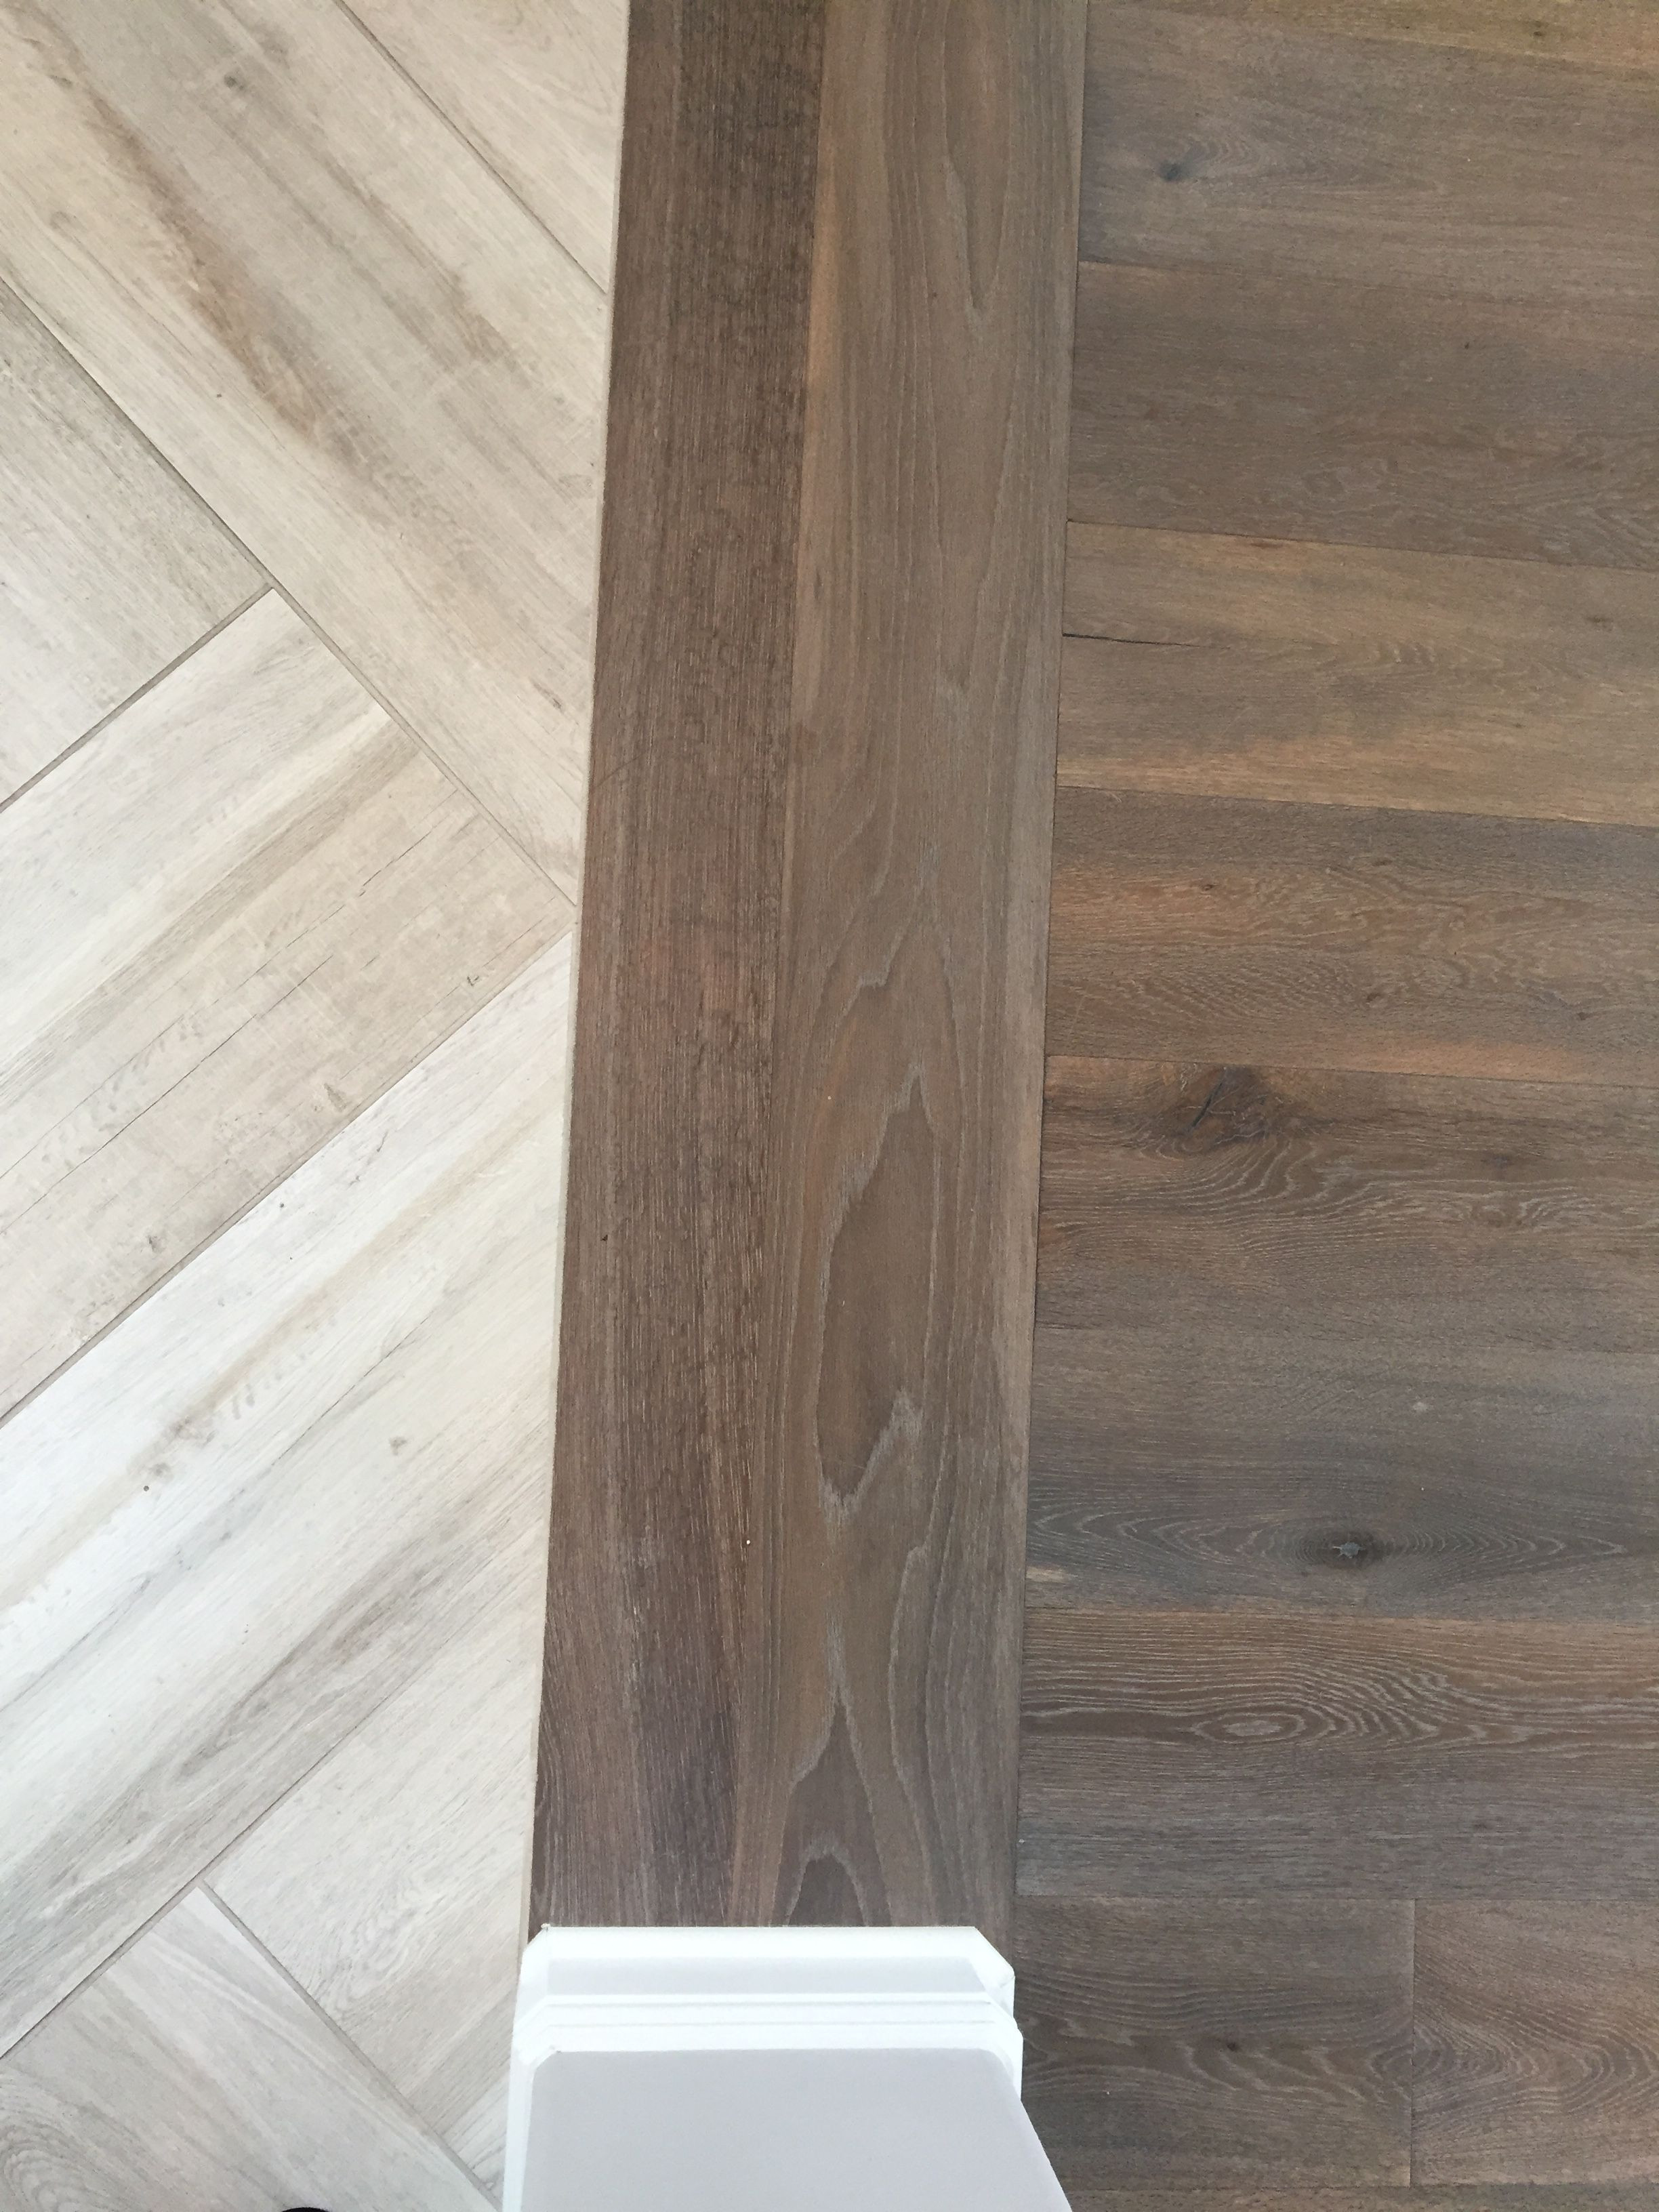 How Much Does Refinishing A Hardwood Floor Cost Of Floor Transition Laminate to Herringbone Tile Pattern Model Intended for Floor Transition Laminate to Herringbone Tile Pattern Herringbone Tile Pattern Herringbone Wood Floor